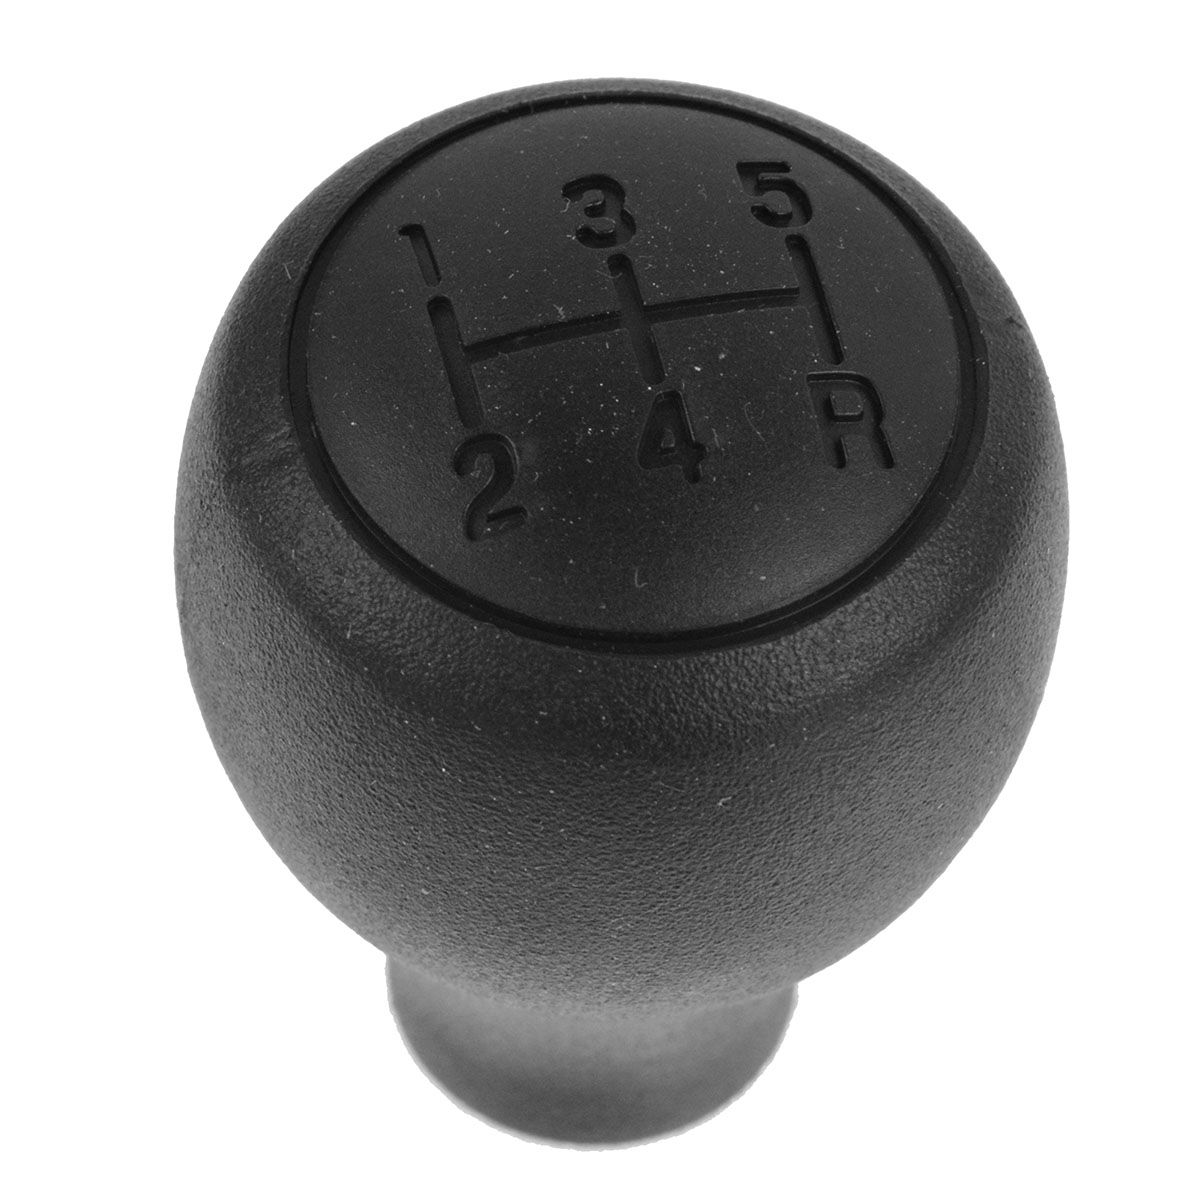 Ford Shifter Knob 5 Speed Manual Transmission For Bronco Manual Guide